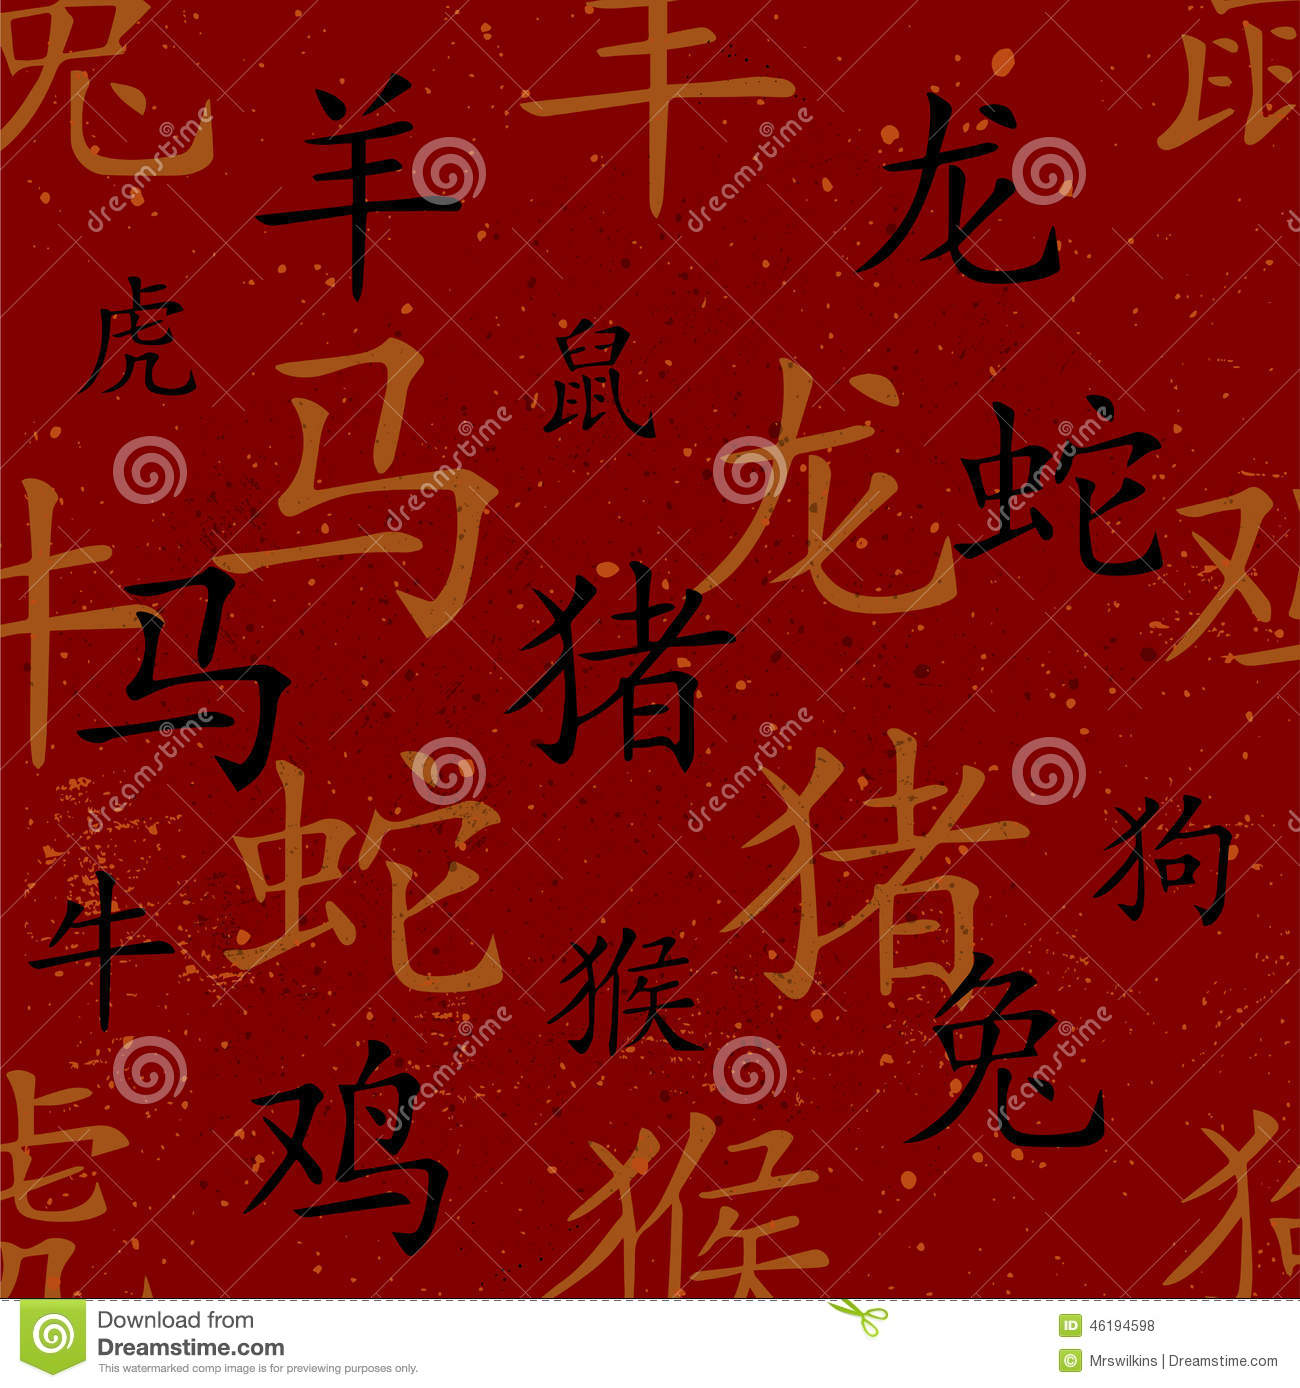 Animated Snake Wallpaper Chinese Red Maroon Oriental Background With Zodiac Signs